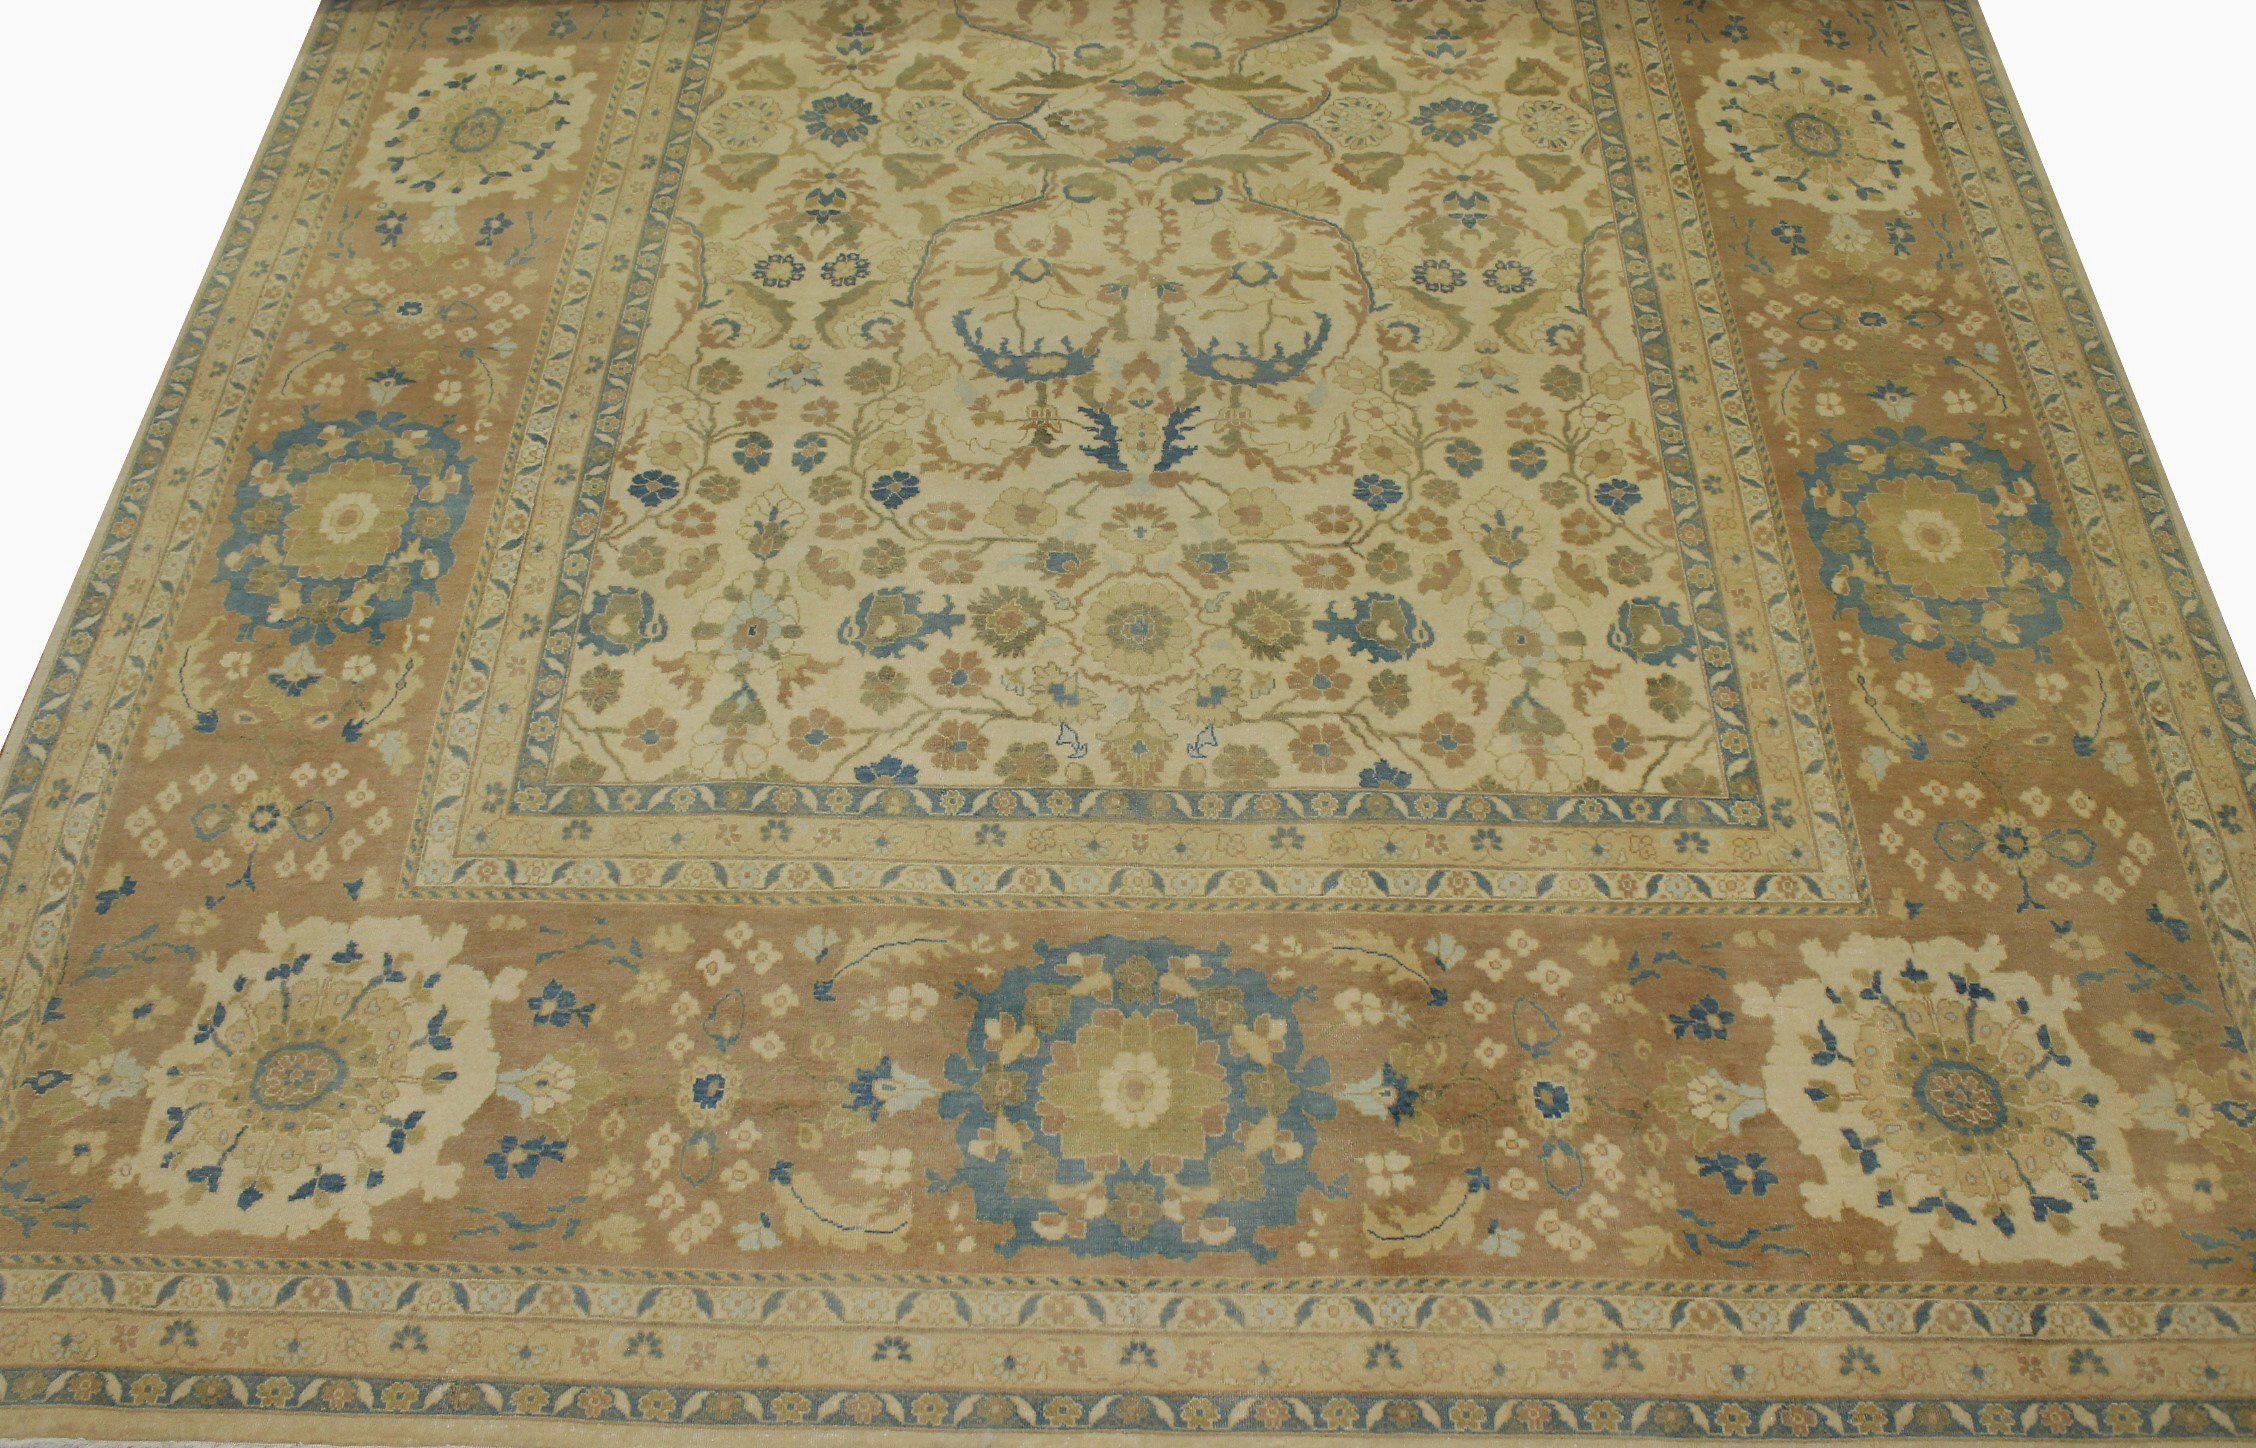 10x14 Antique Revival Hand Knotted Wool Area Rug - MR11216